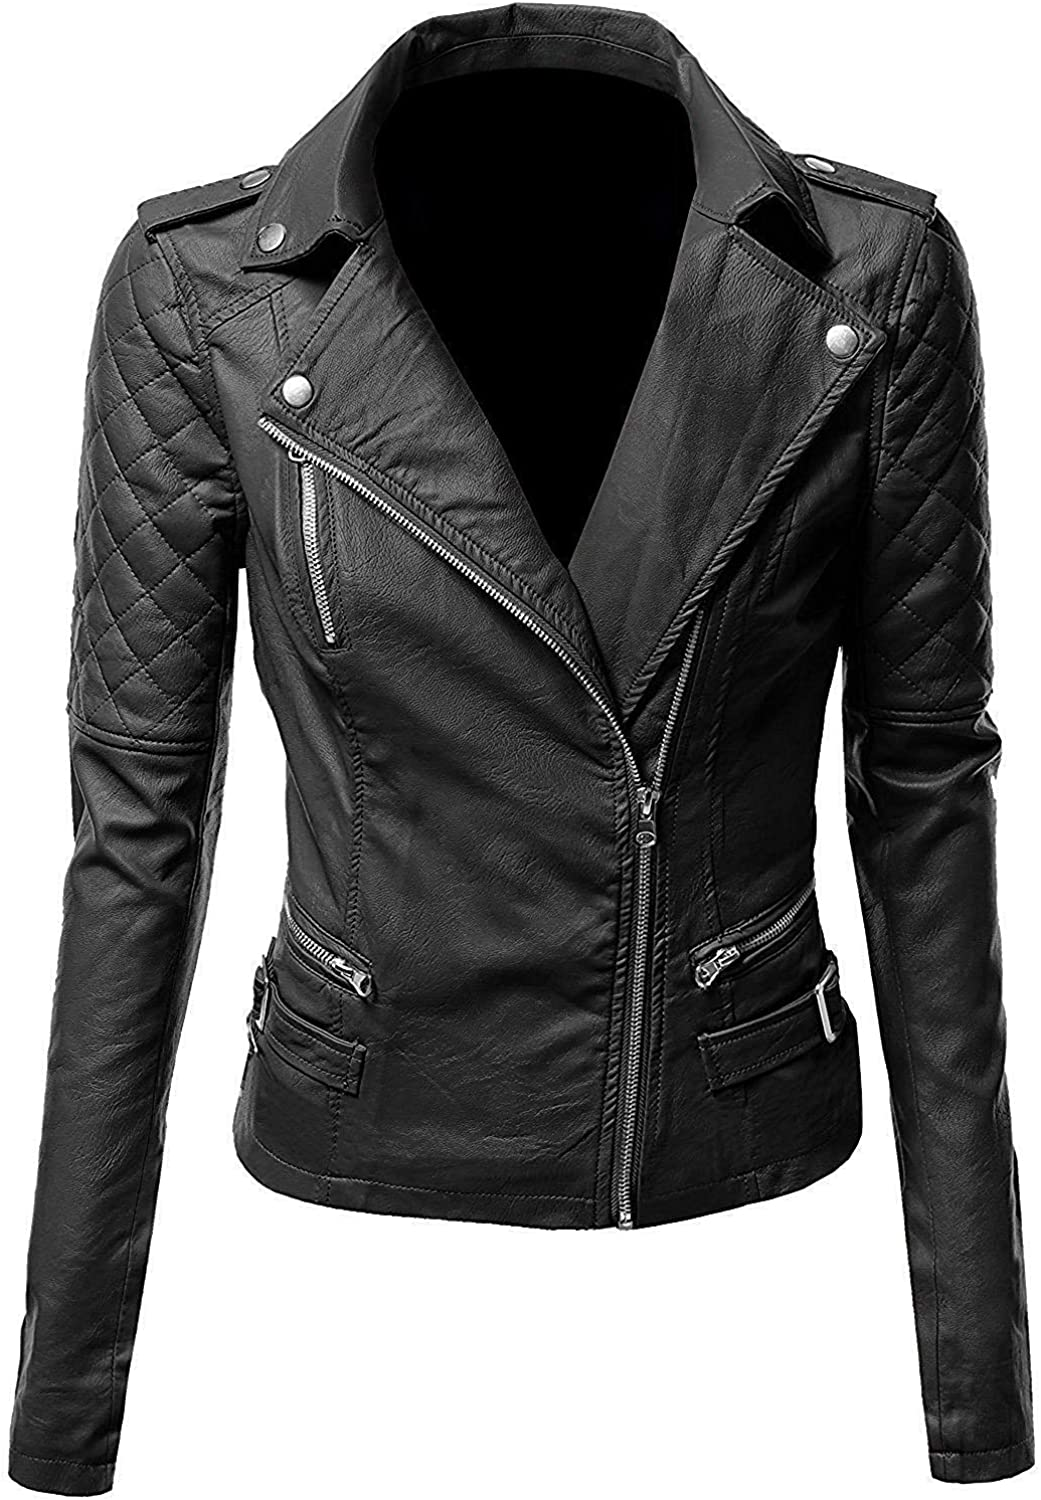 Ribi's Notch Collar Quilted Biker Leather Jacket for Women